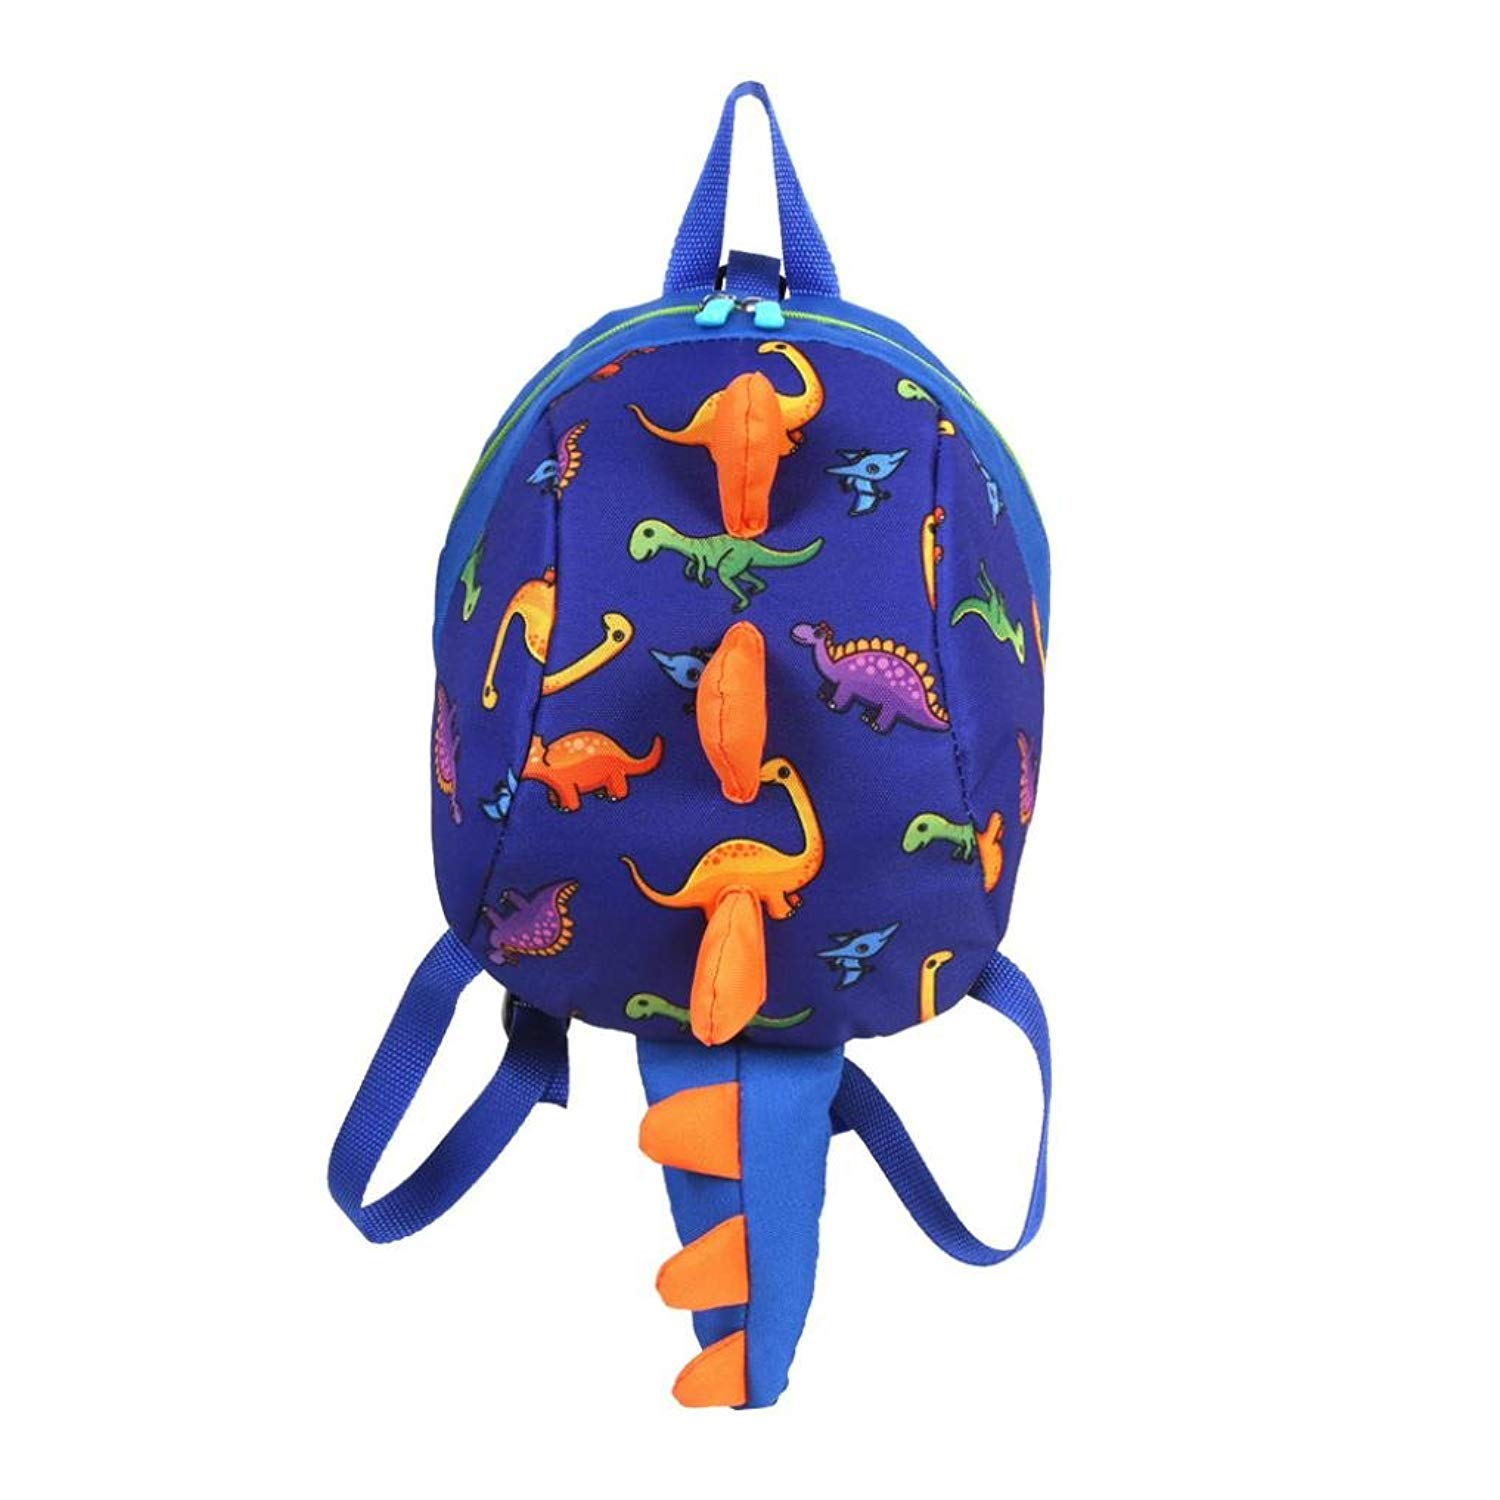 60f2a77e33d5 Get Quotations · Kids Backpack